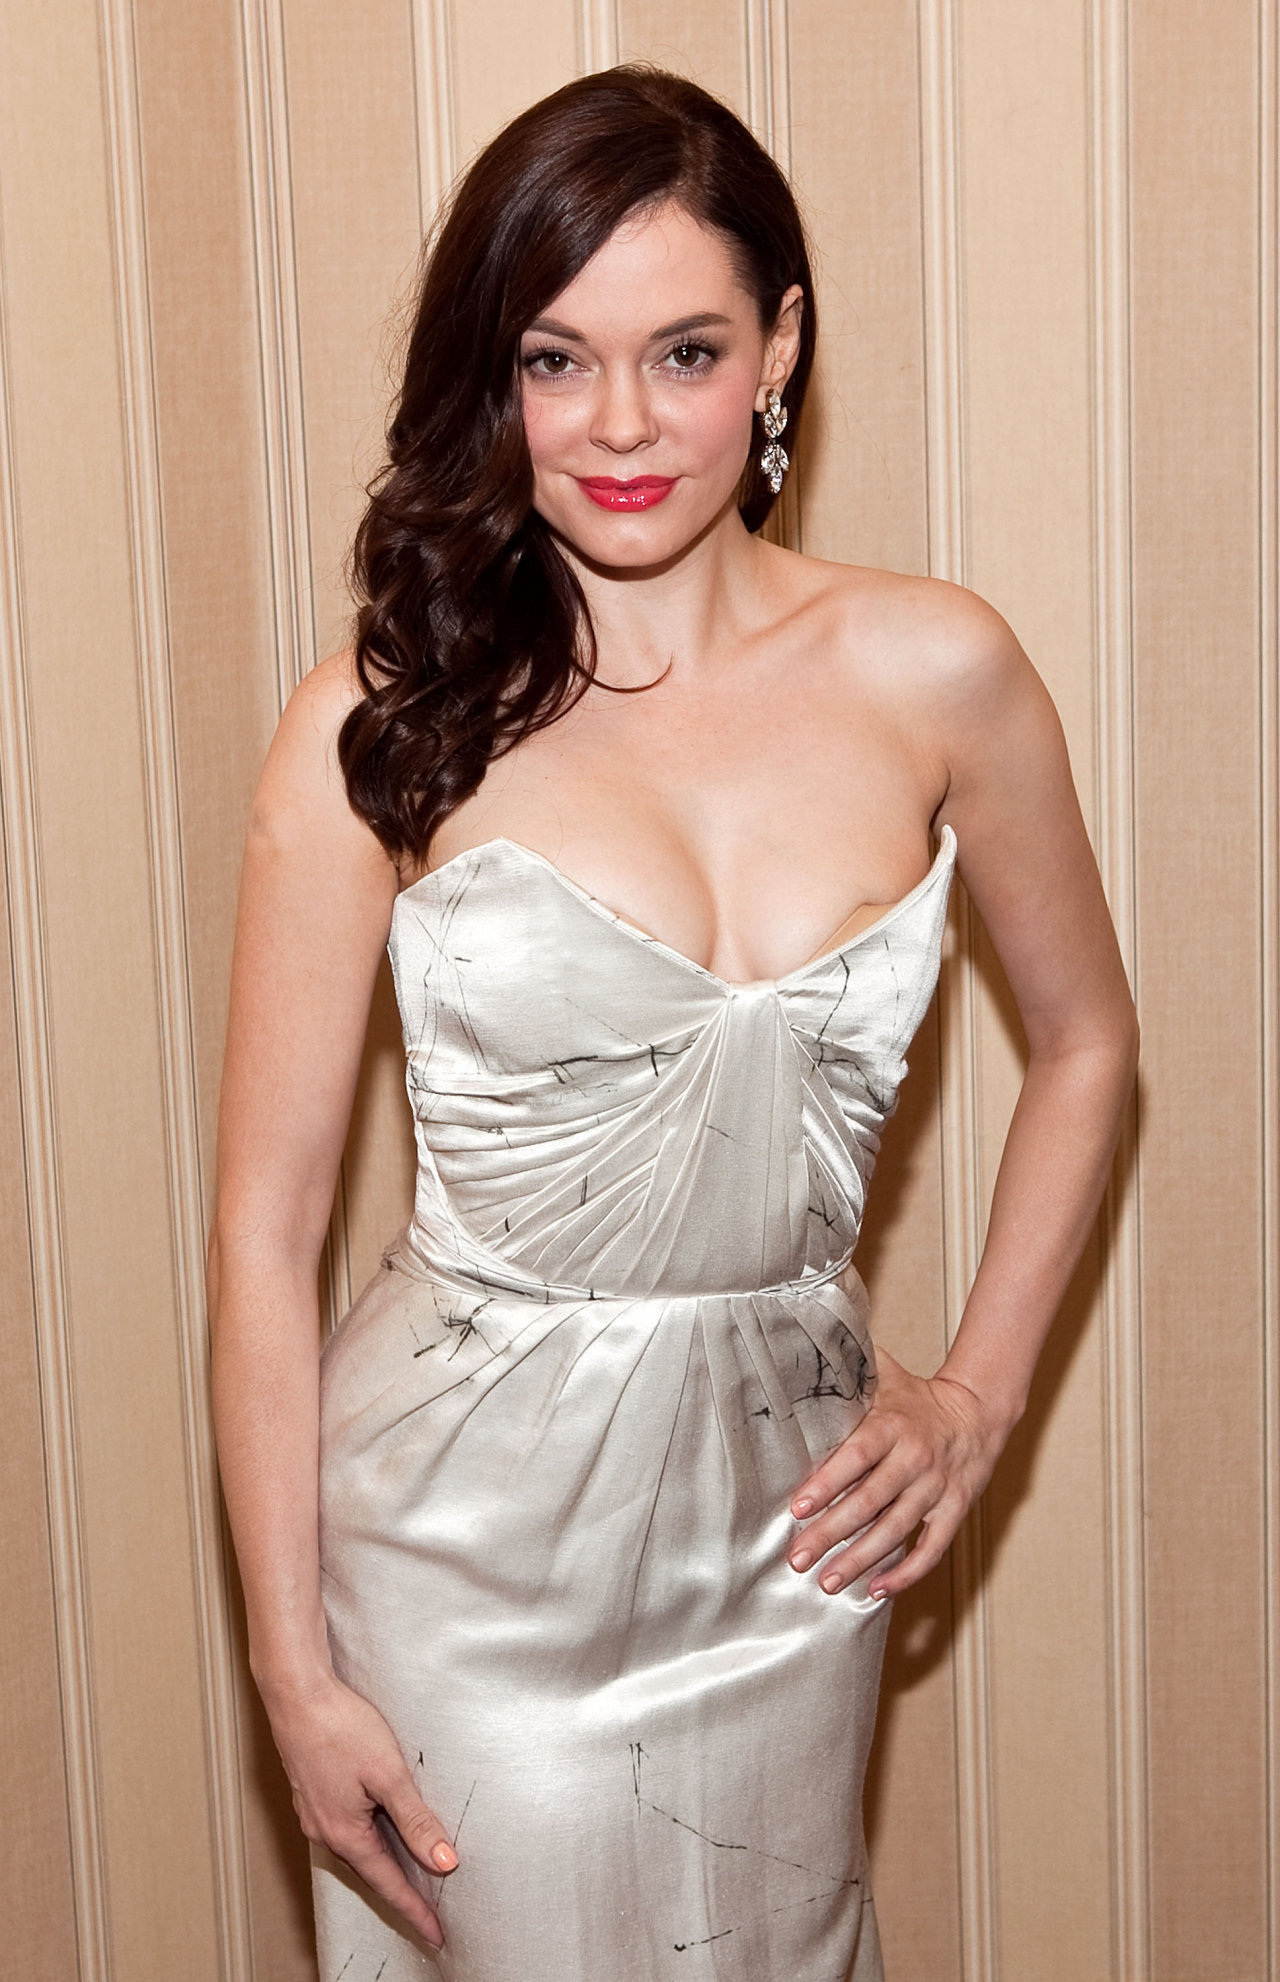 rose mcgowan pictures - photo #44